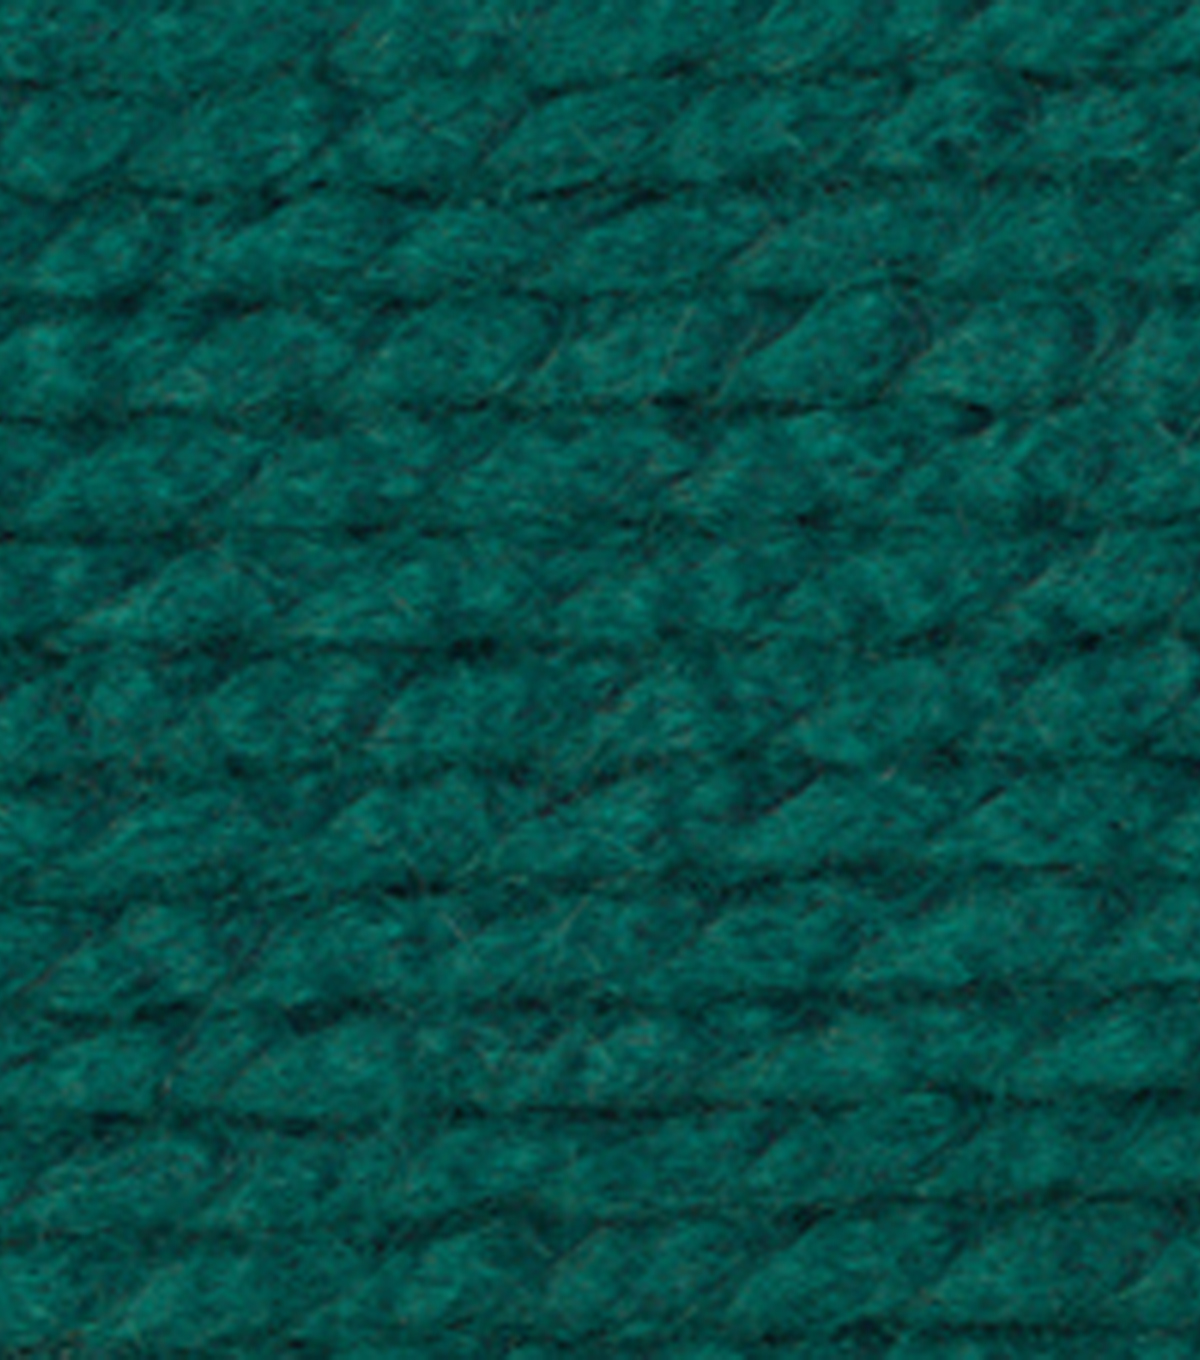 Lion Brand Wool-Ease Thick And Quick Yarn, Peacock